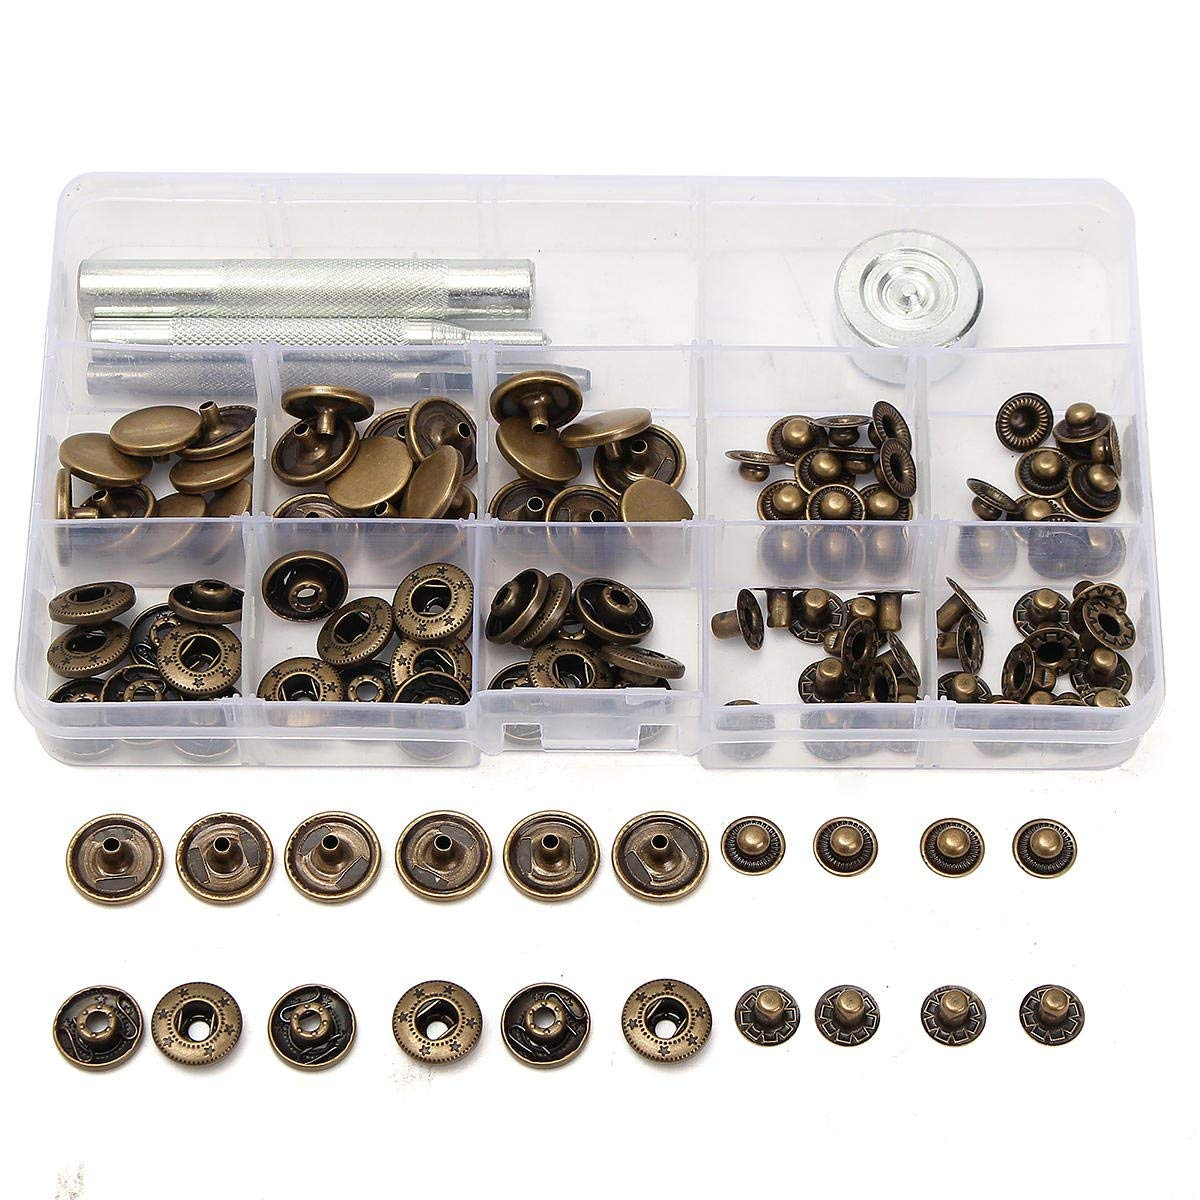 30Set 15mm Antique Snap Fasteners Popper Press Stud Button Leather Kit - Hardware & Accessories Decorative Hardware - 5 x Male Connector Housing, 5 x Female Connector Housing